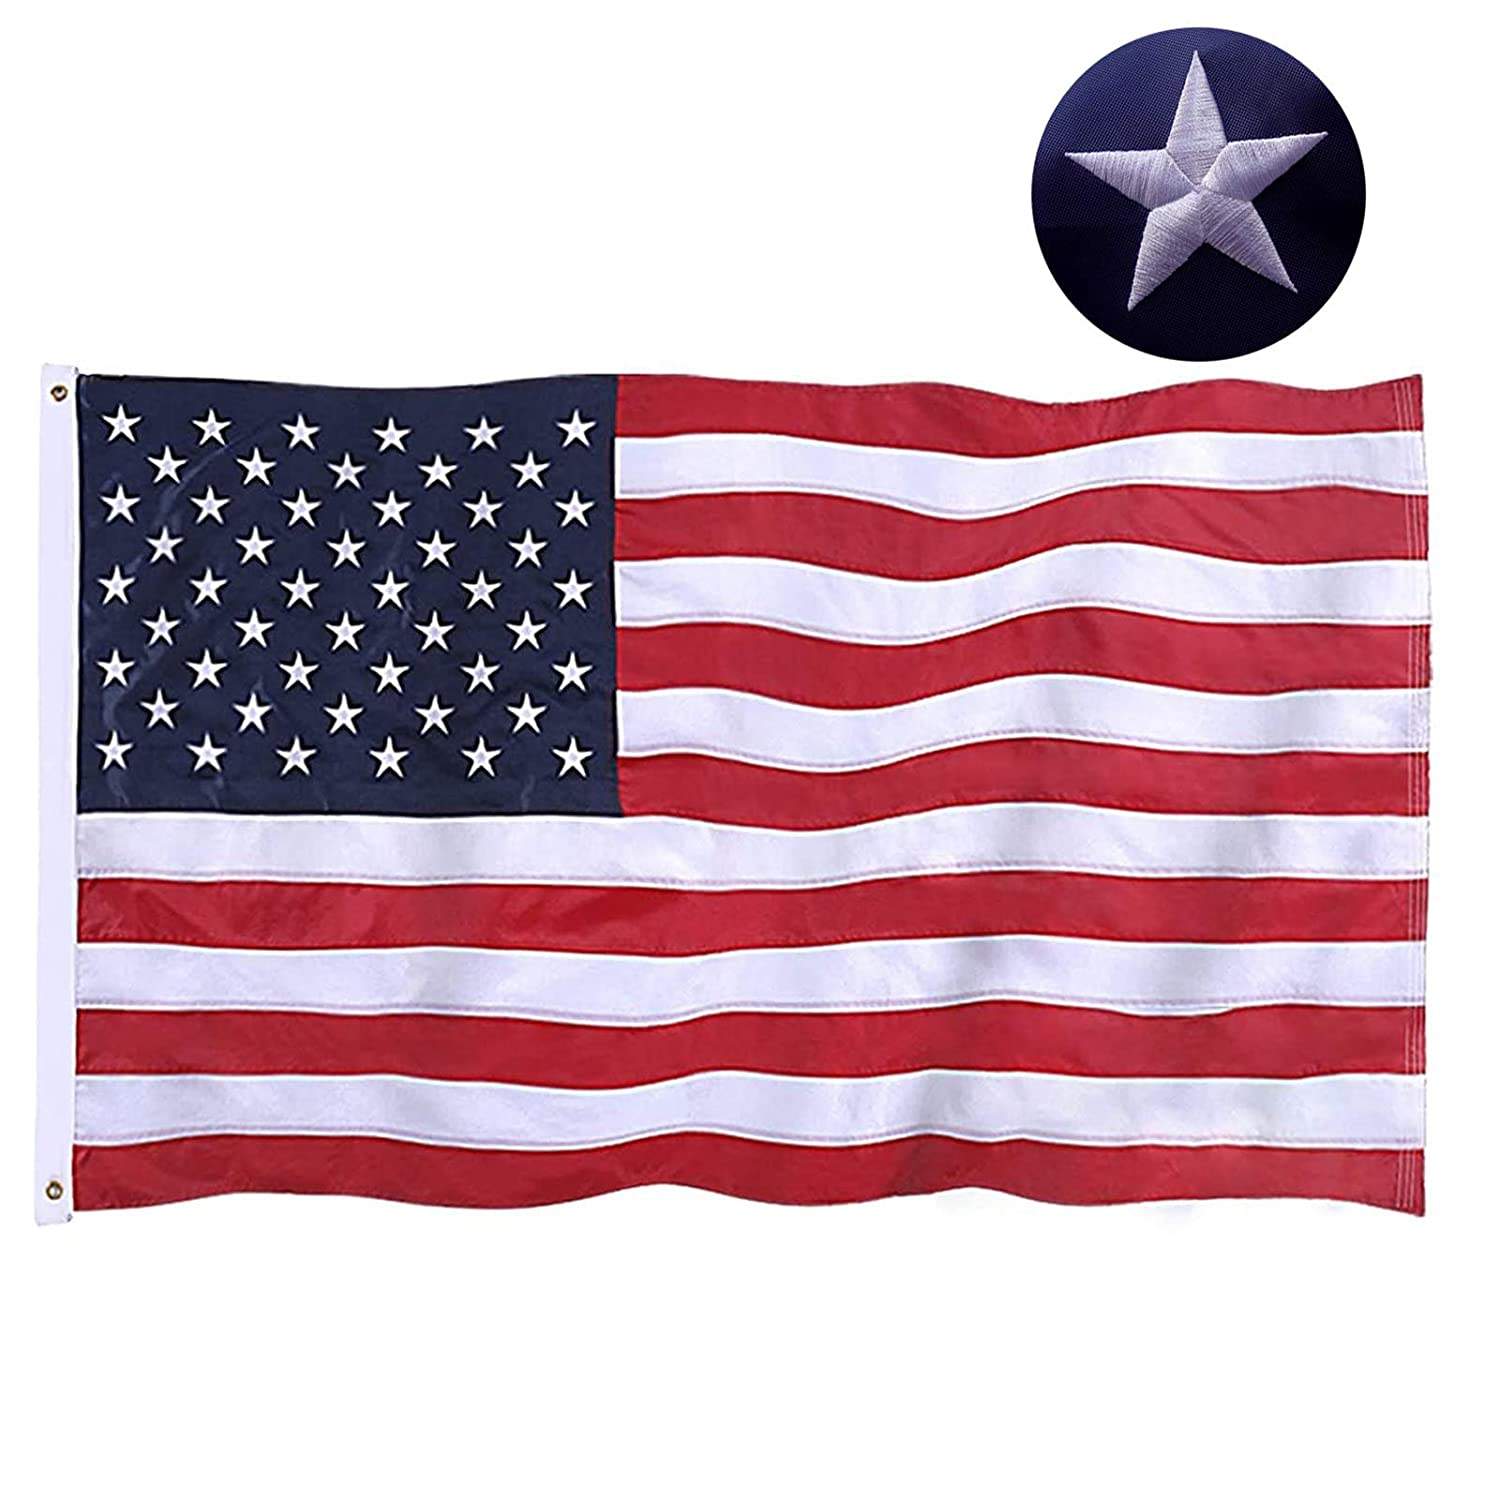 Jetlifee American Flag 2 5x4 Ft Embroidered Stars Sewn Stripes Brass Grommets Us Flag Decorations Outdoors Indoors Usa Flags Polyester 2 5 X 4 Foot Garden Outdoor